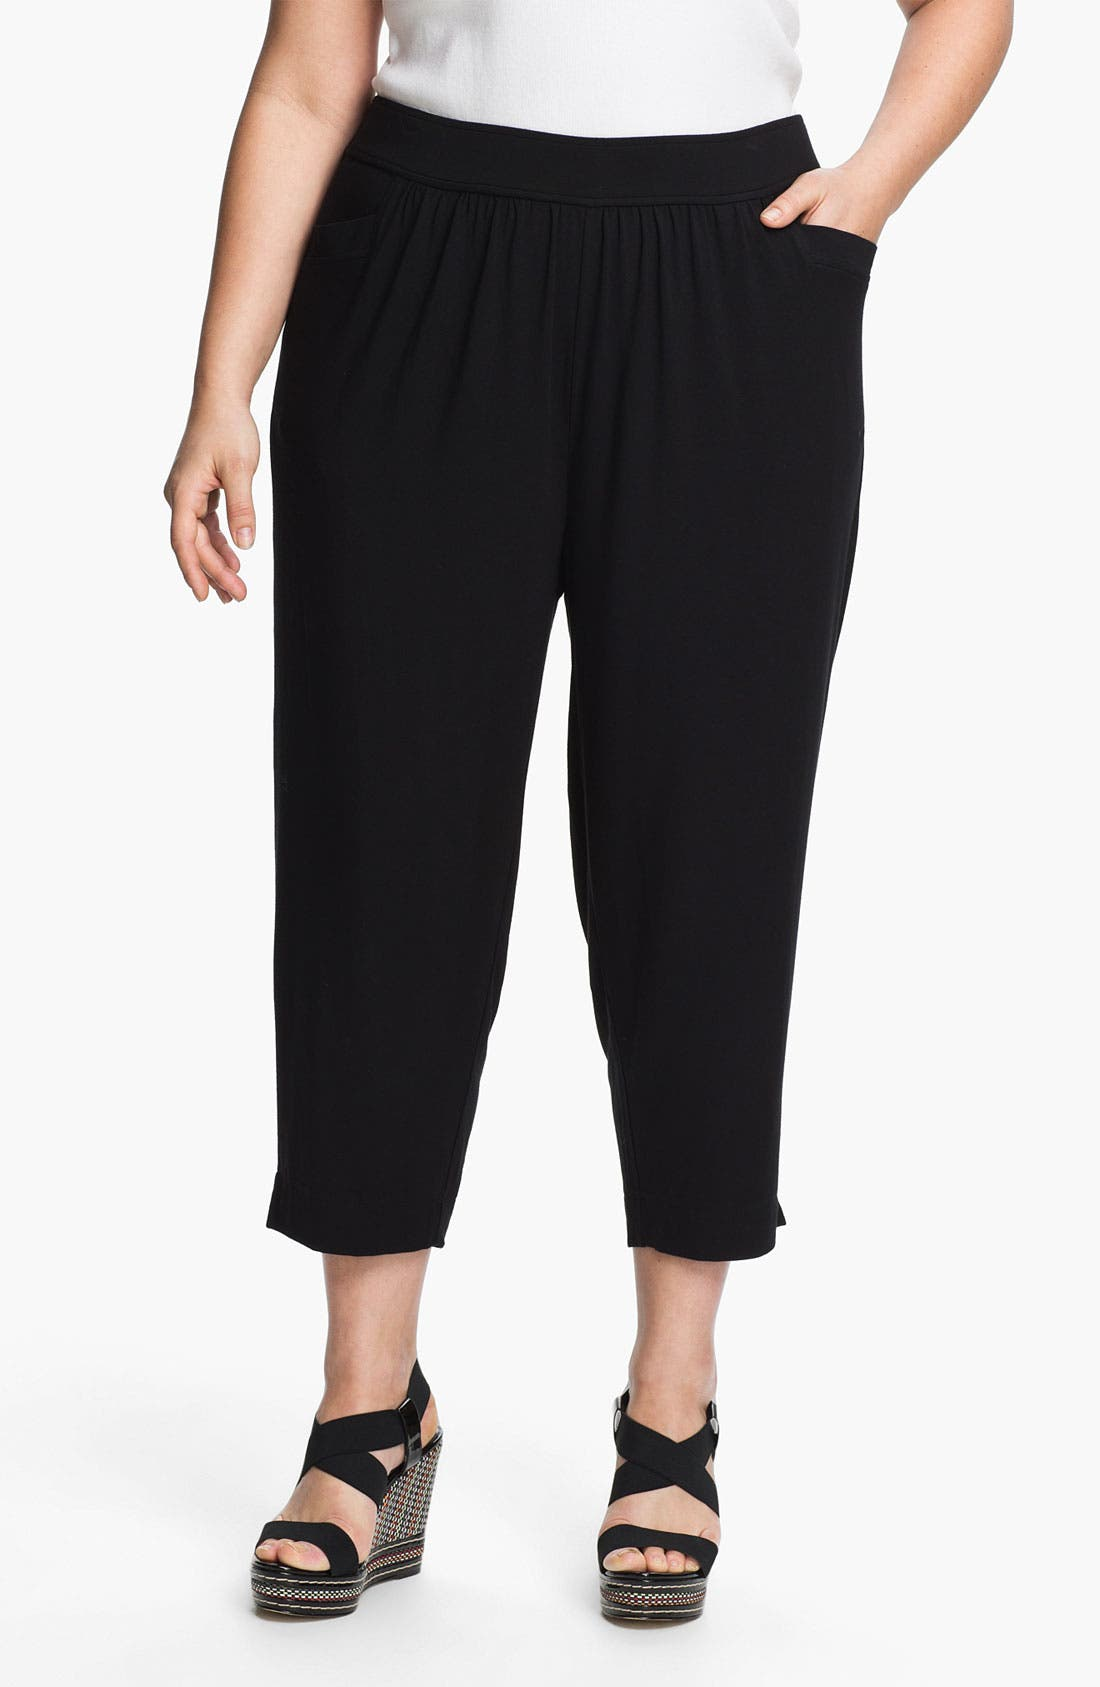 Alternate Image 1 Selected - Sejour Jersey Knit Crop Pants (Plus Size)